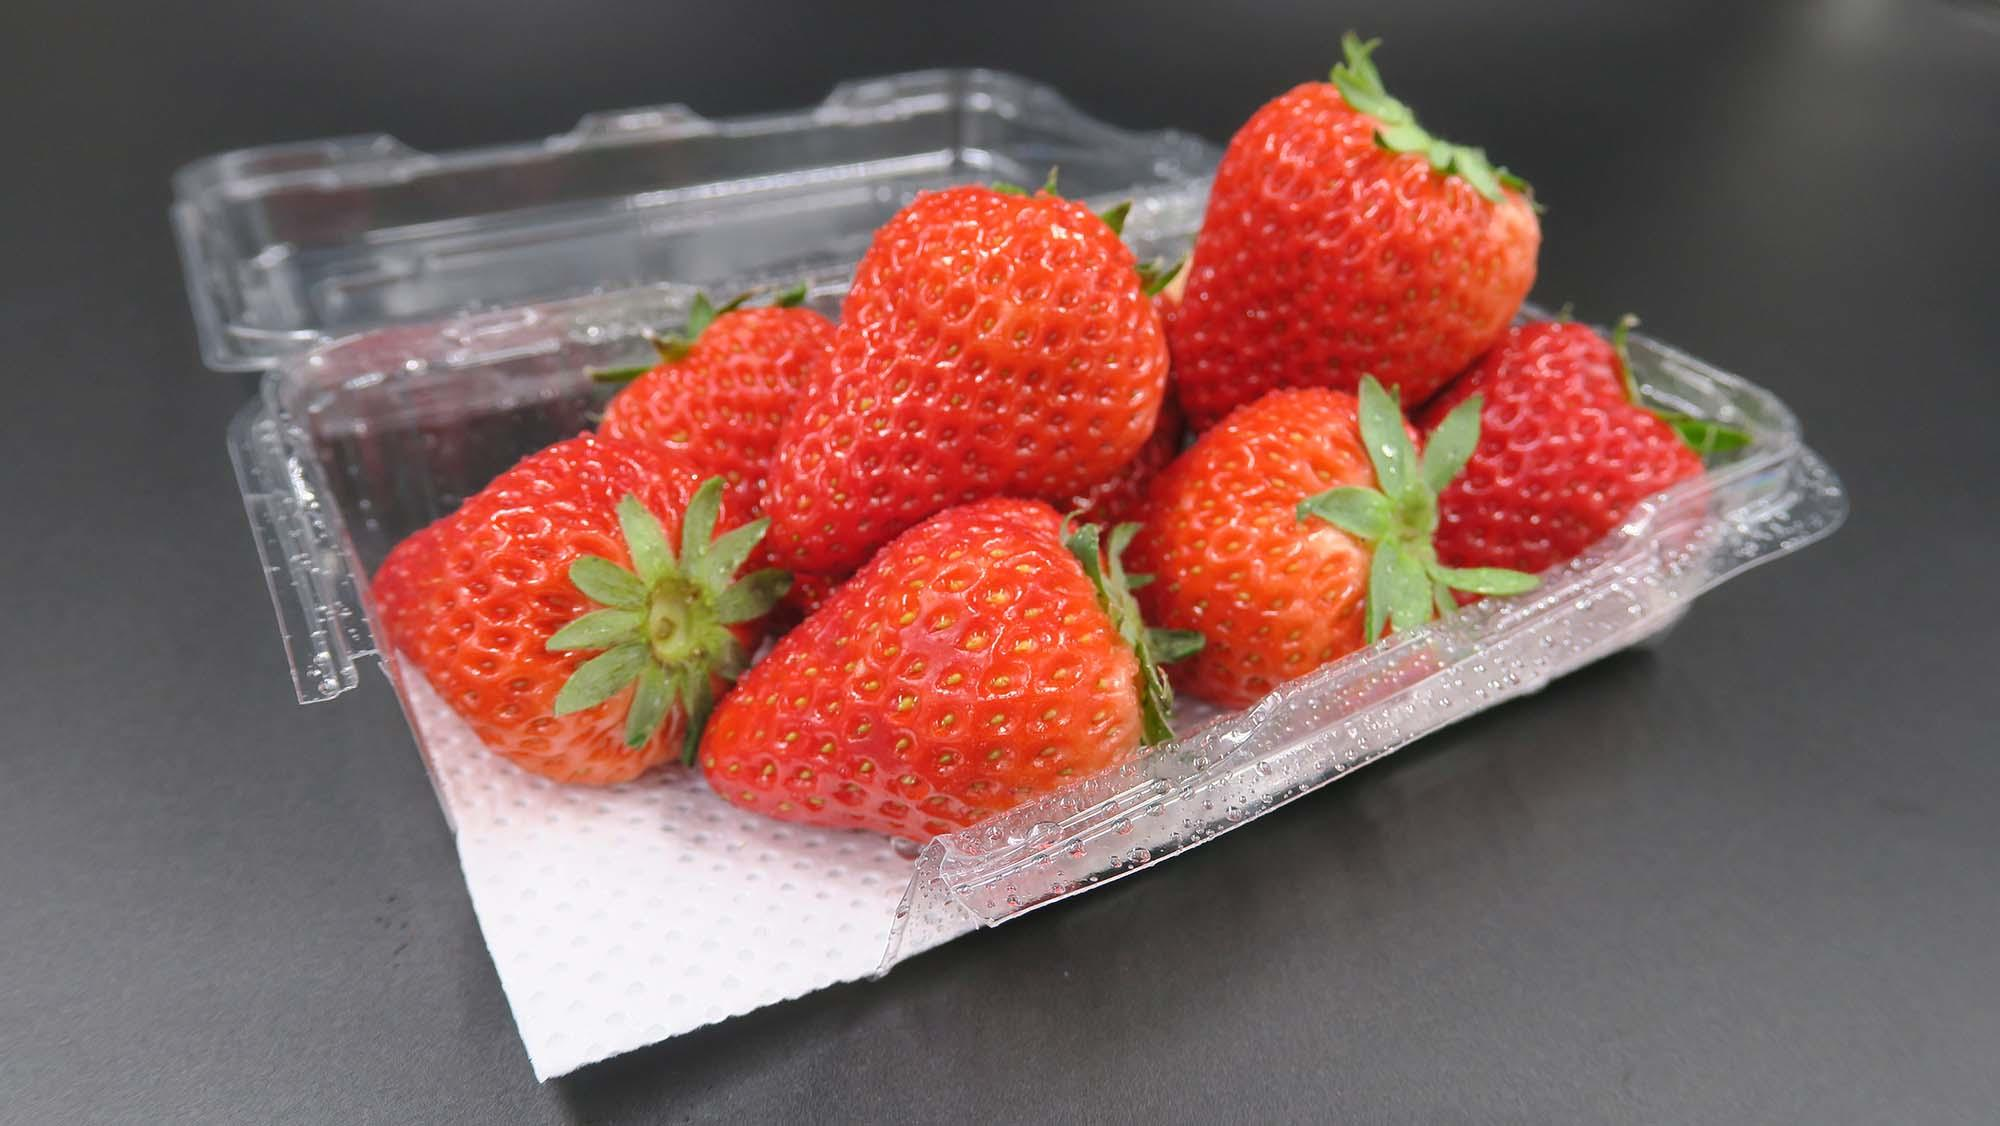 Demi pad asbsorbent pad for under fruits and vegetables to ensure the best possible food for blueberry-1